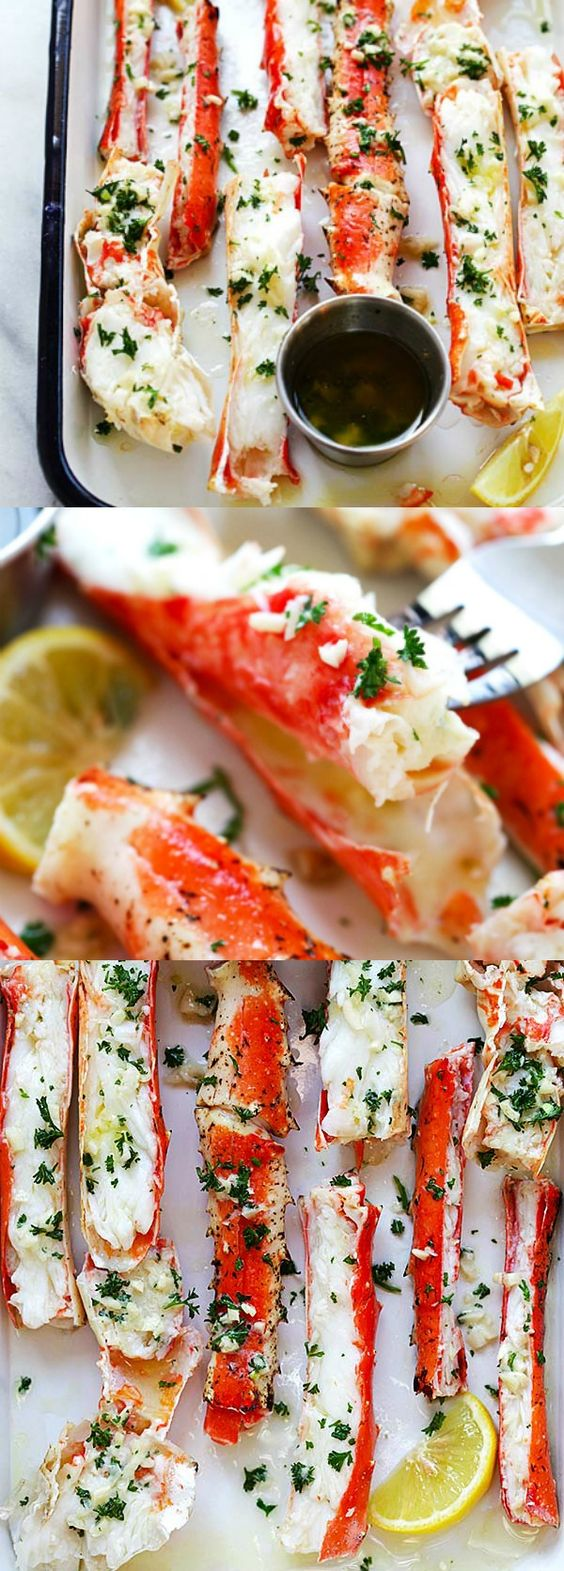 Garlic Lemon Butter Crab Legs - crazy delicious king crab legs in garlic herb and lemon butter. This crab legs recipe is so good you want it everyday!